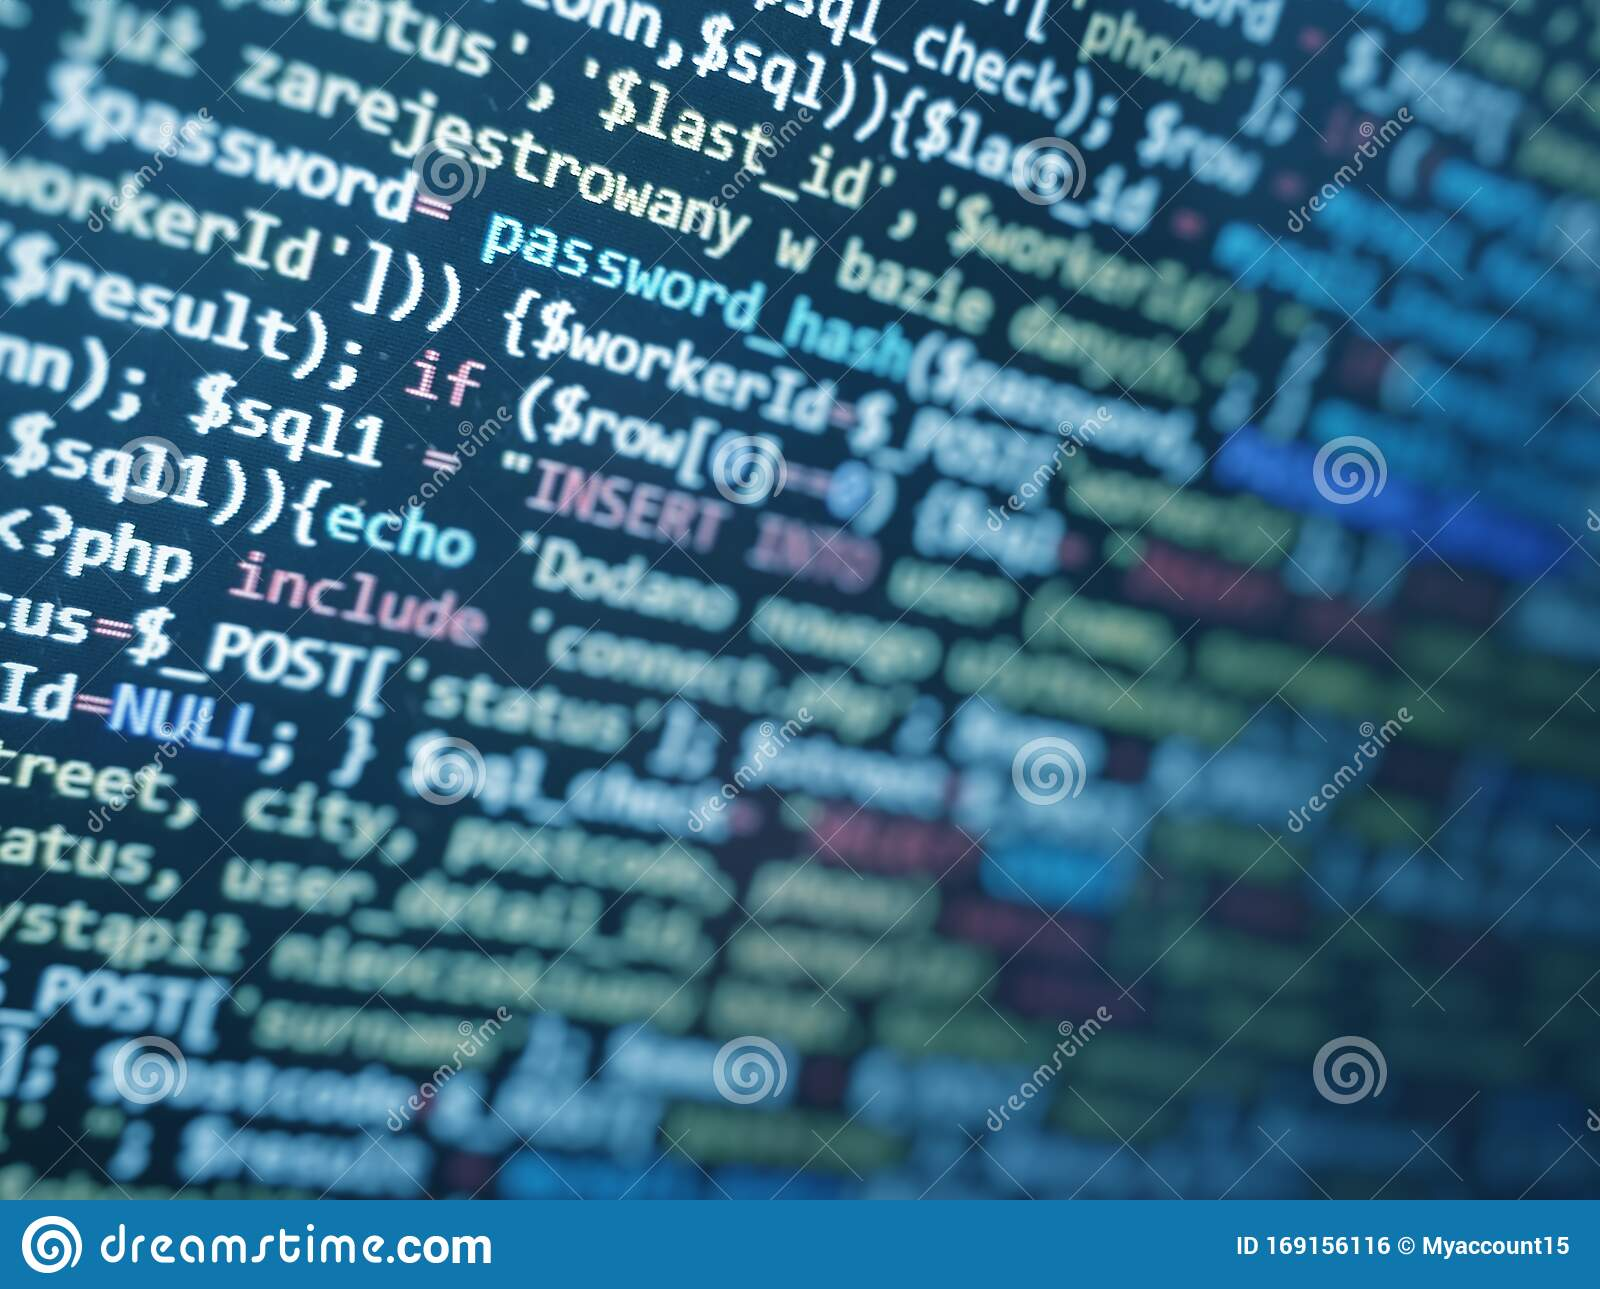 Download free php source code for website online